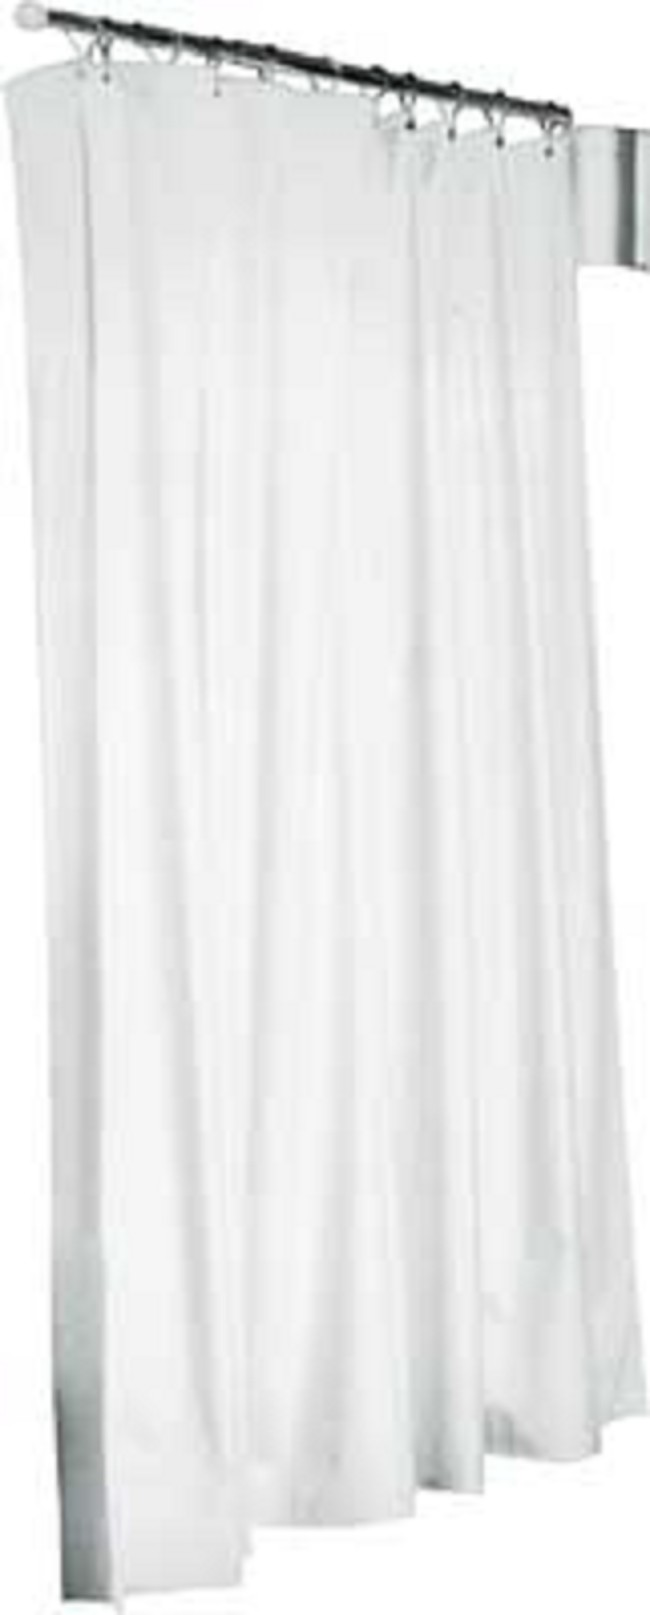 Portable privacy curtains - Wall Mounted Telescopic Curtain